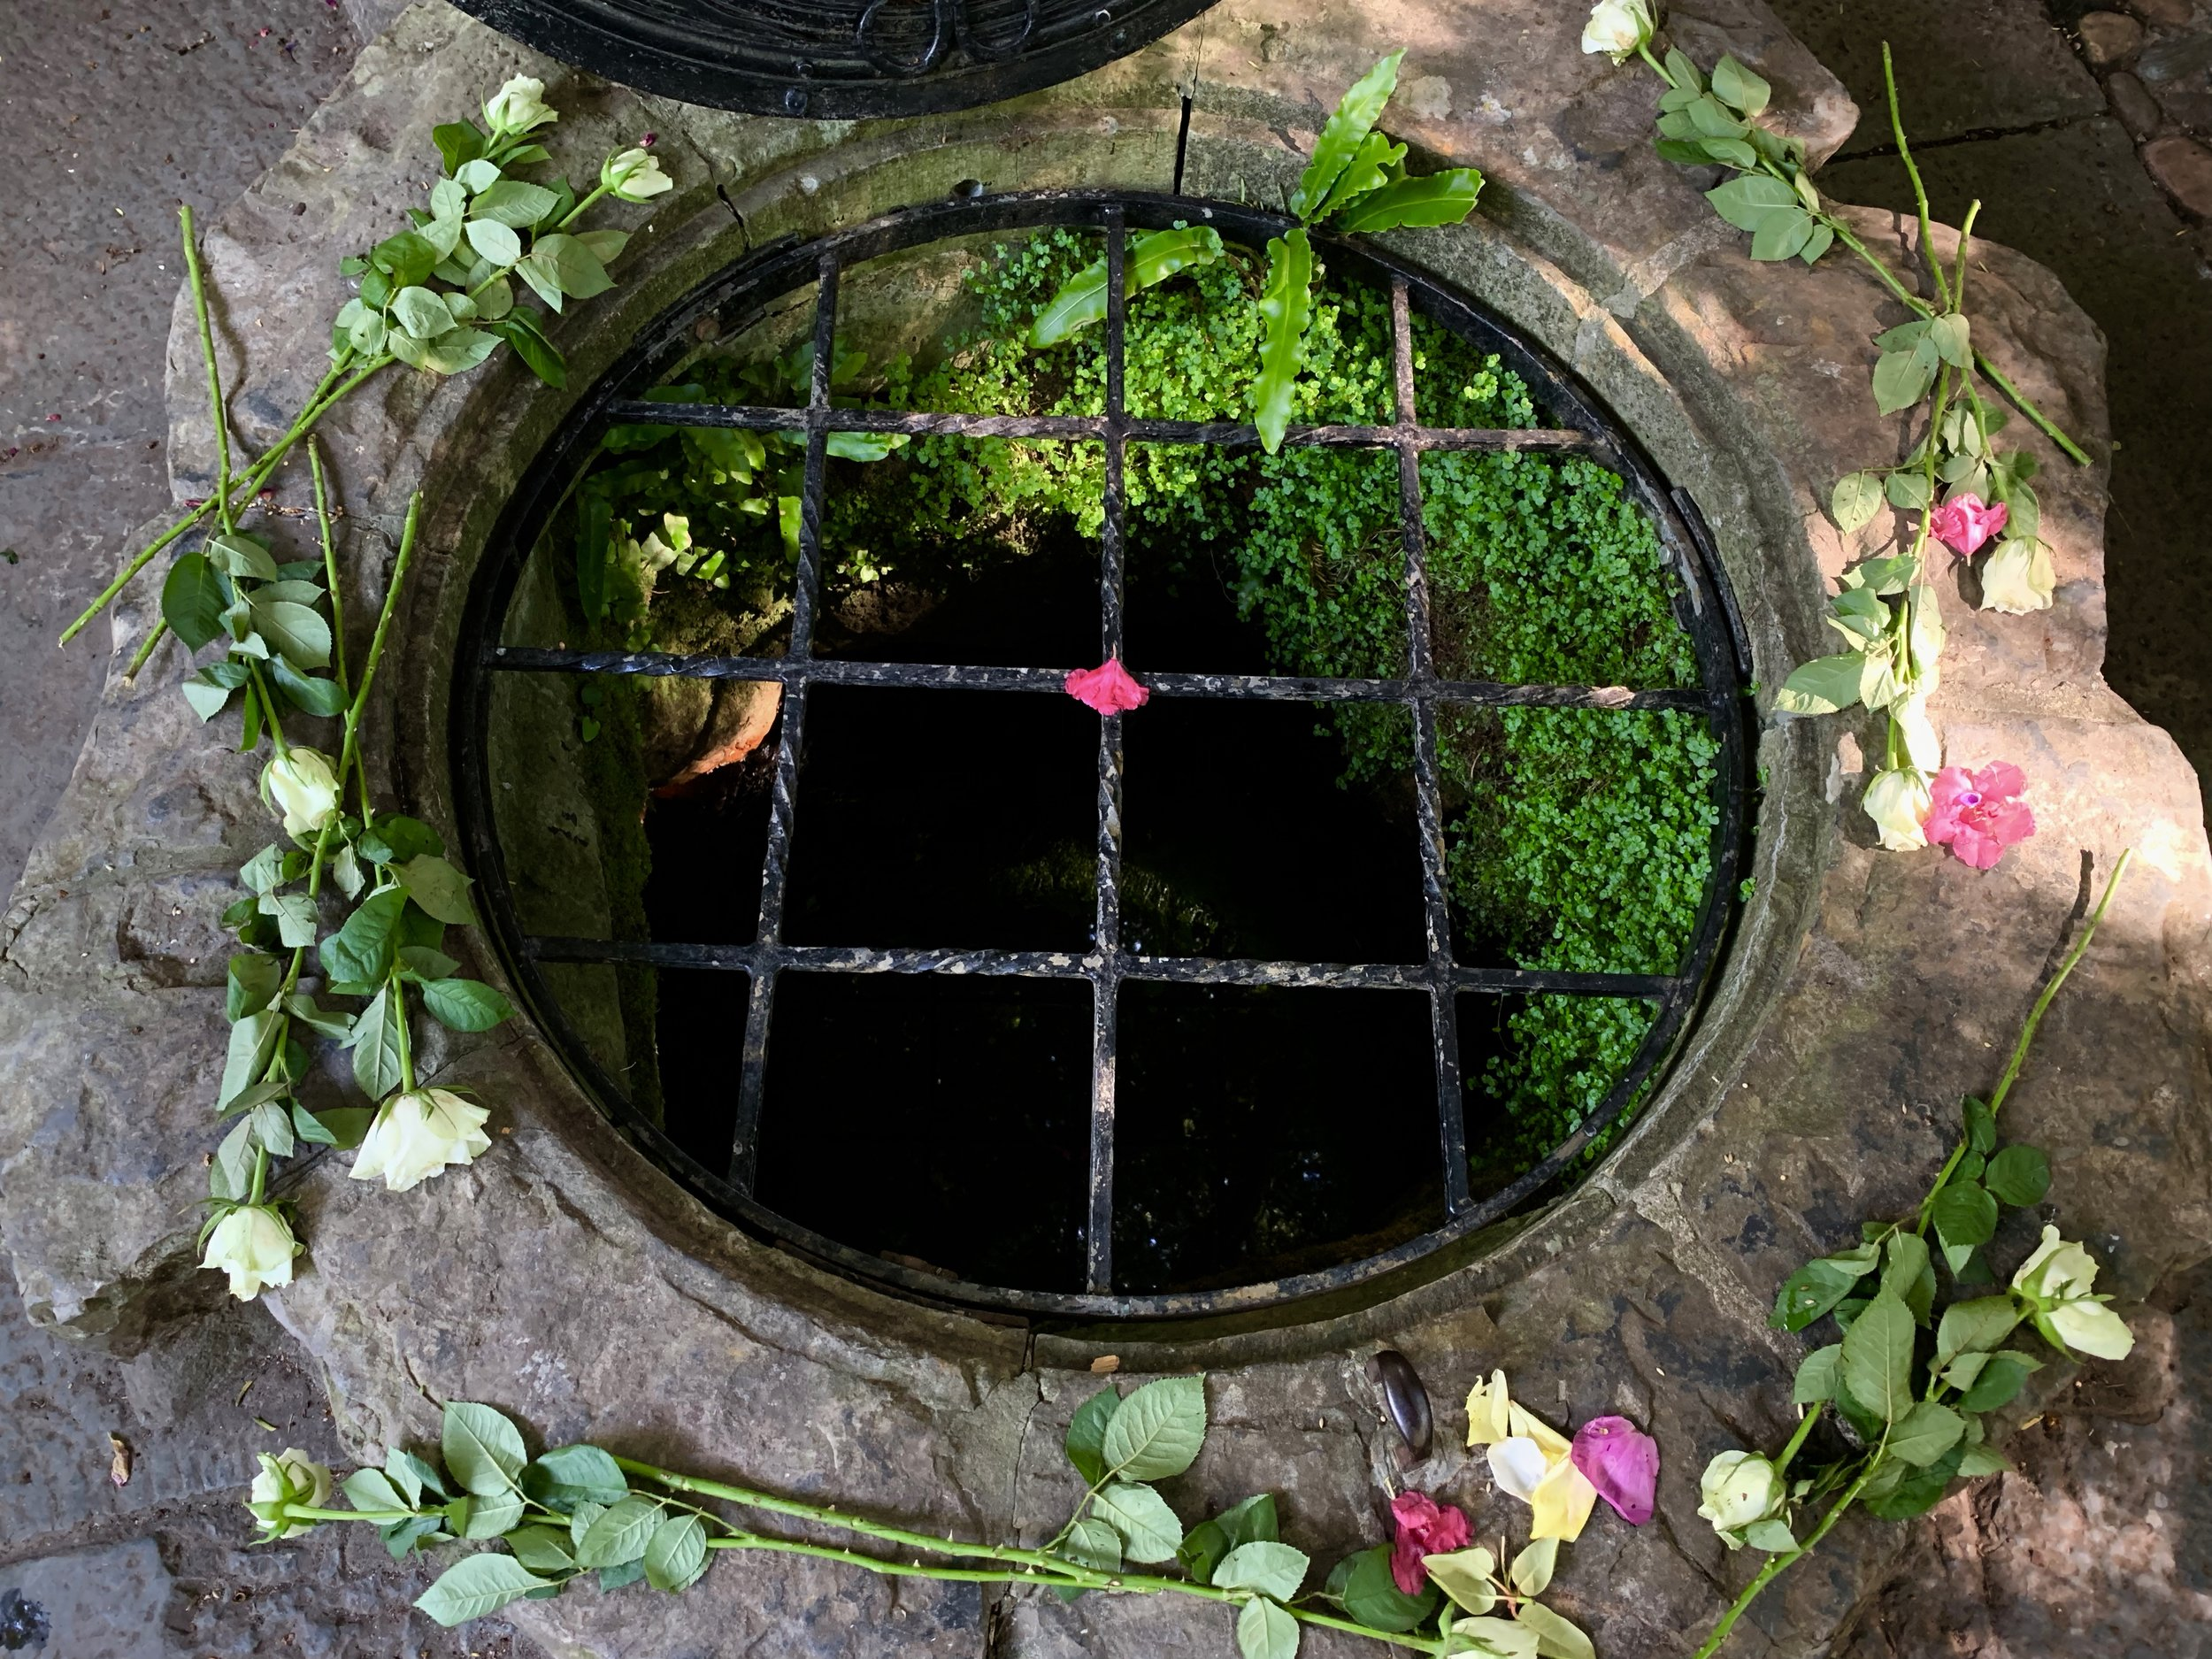 Chalice Well, Glastonbury, England. Photo by anne richardson.